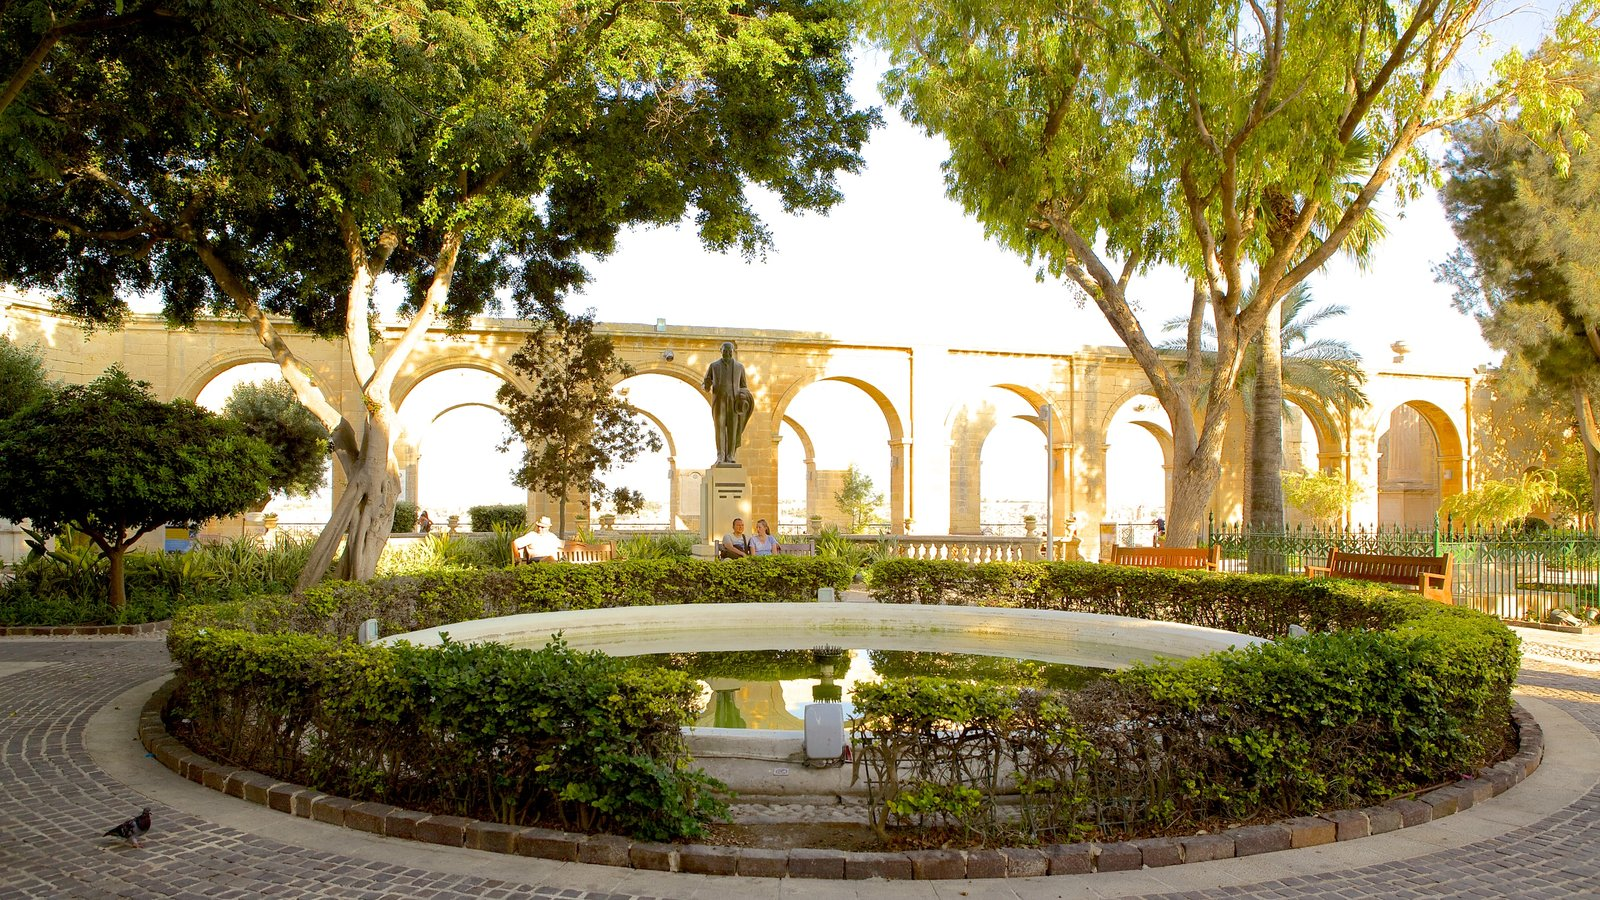 Upper Barrakka Gardens Pictures View Photos Images Of